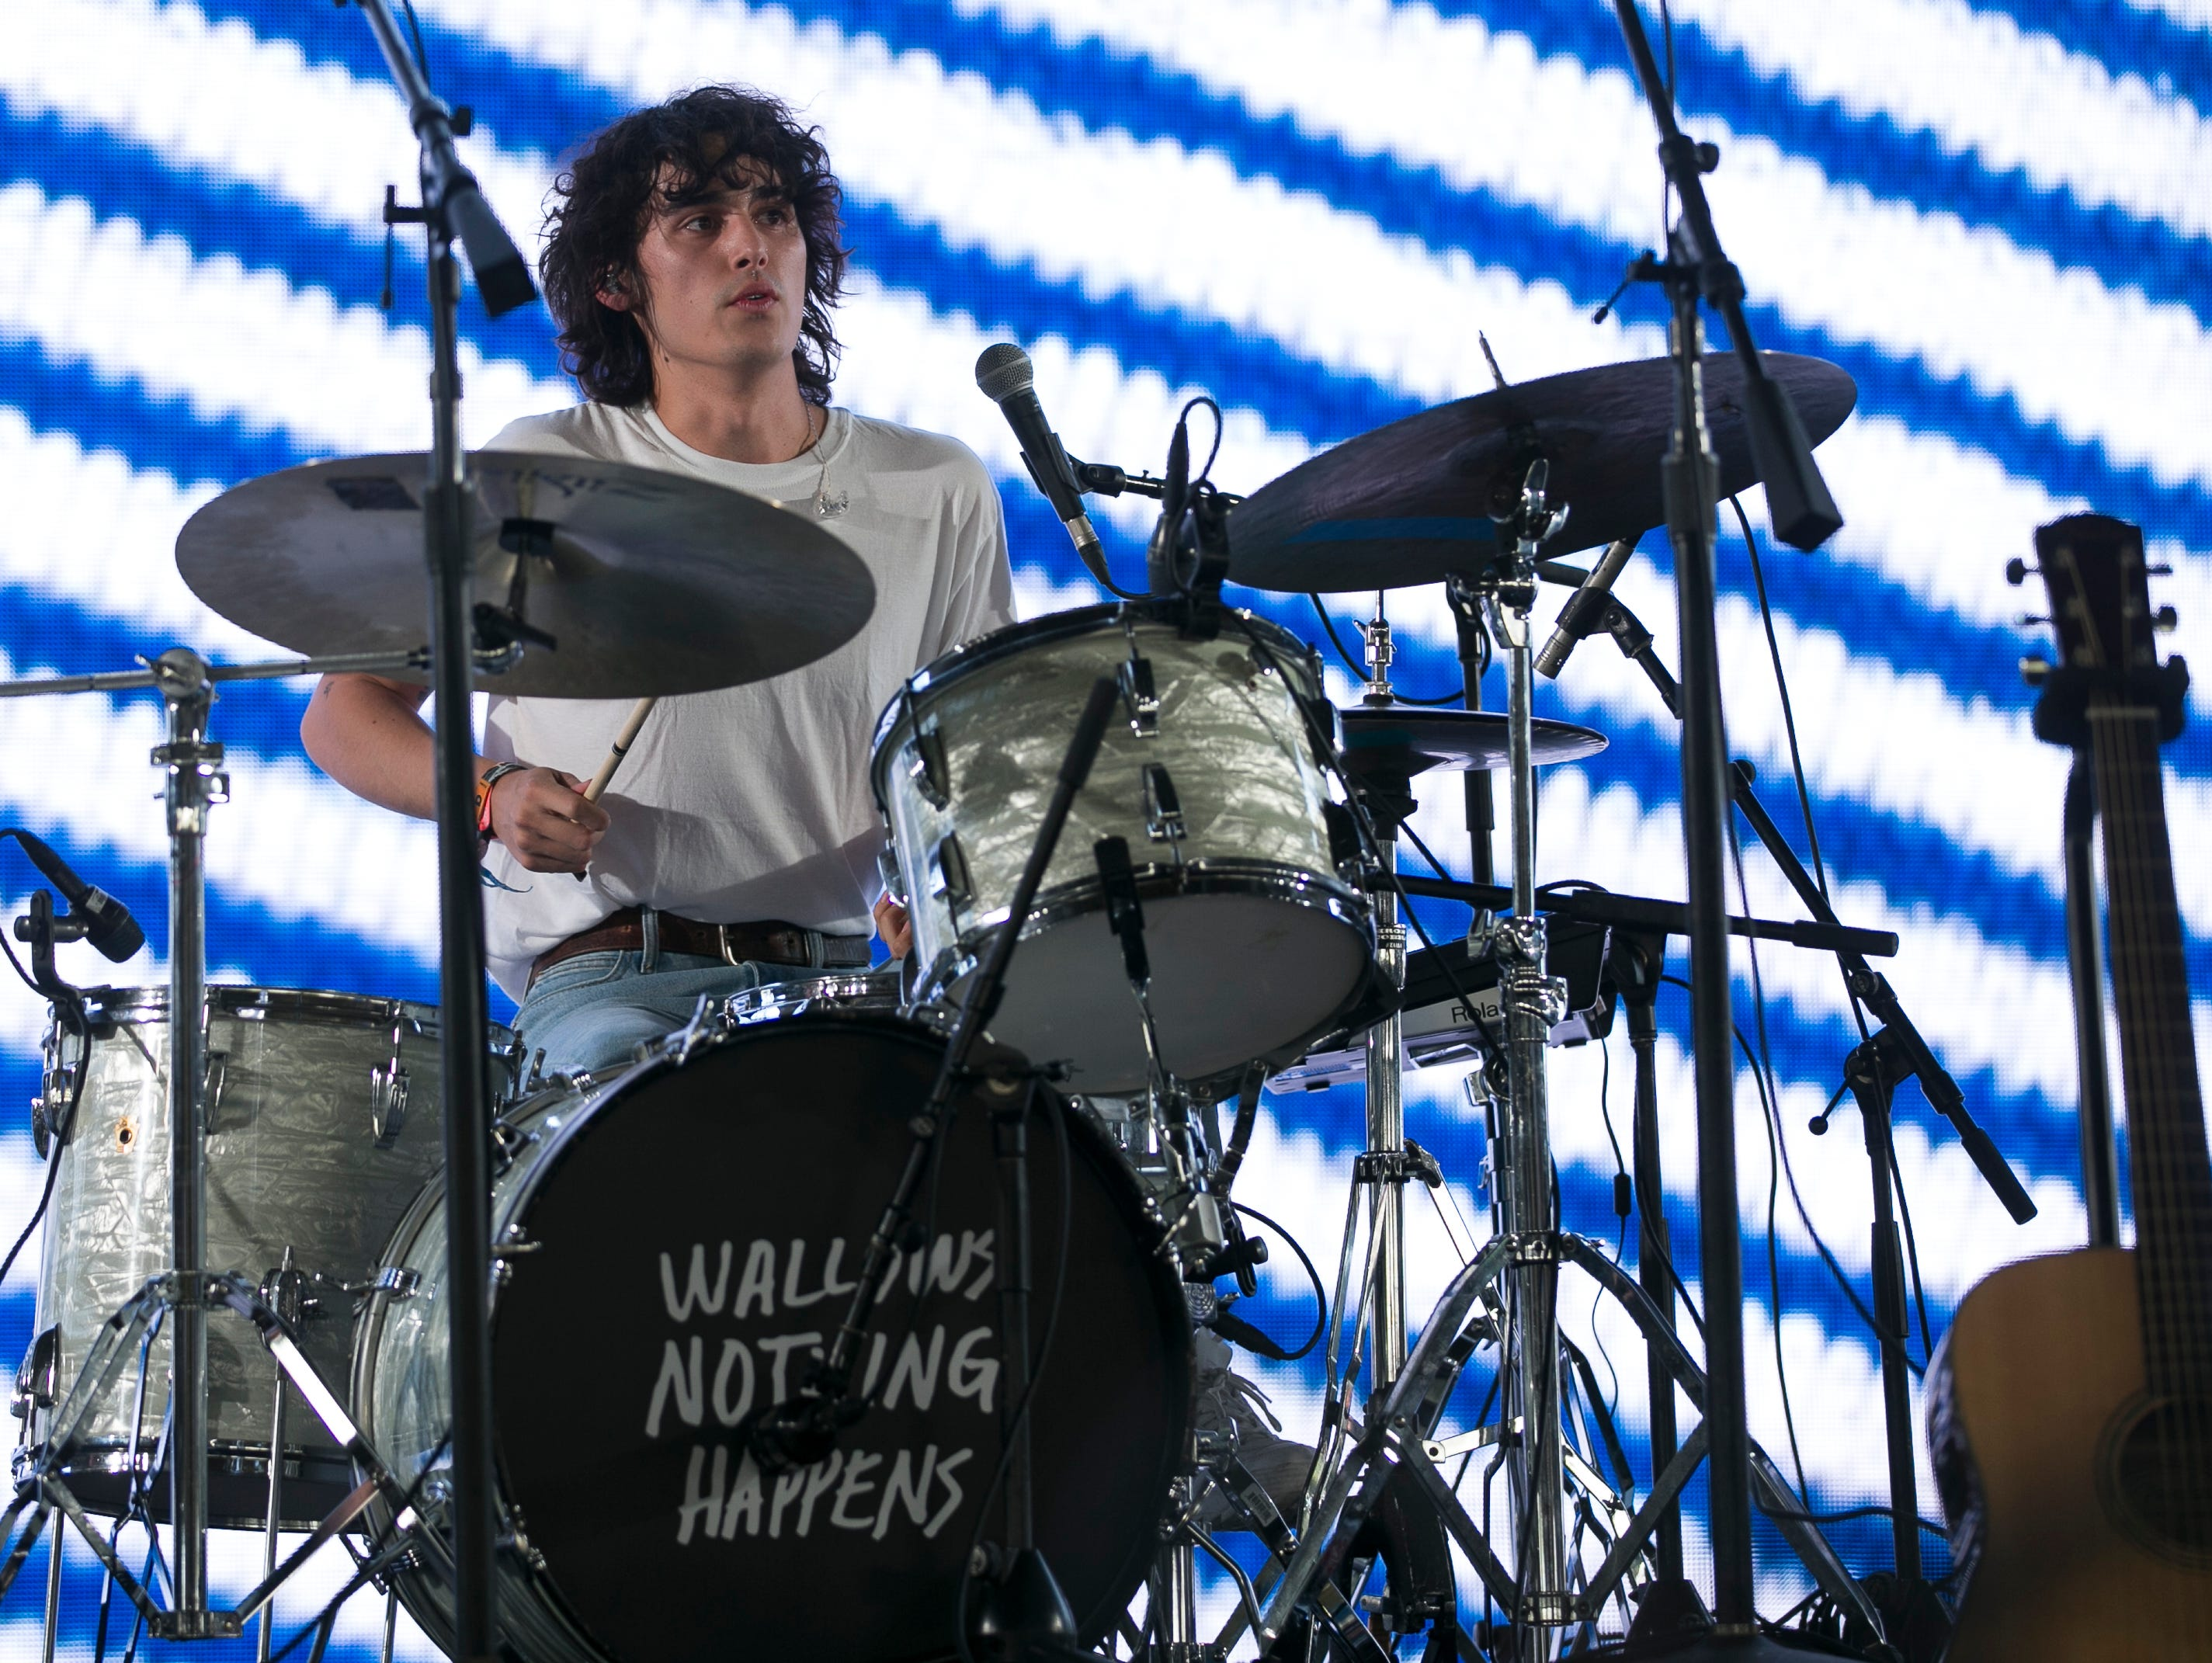 Wallows perform on stage Mojave at Coachella 2019 in Indio, Calif. on Sat. April 13, 2019.